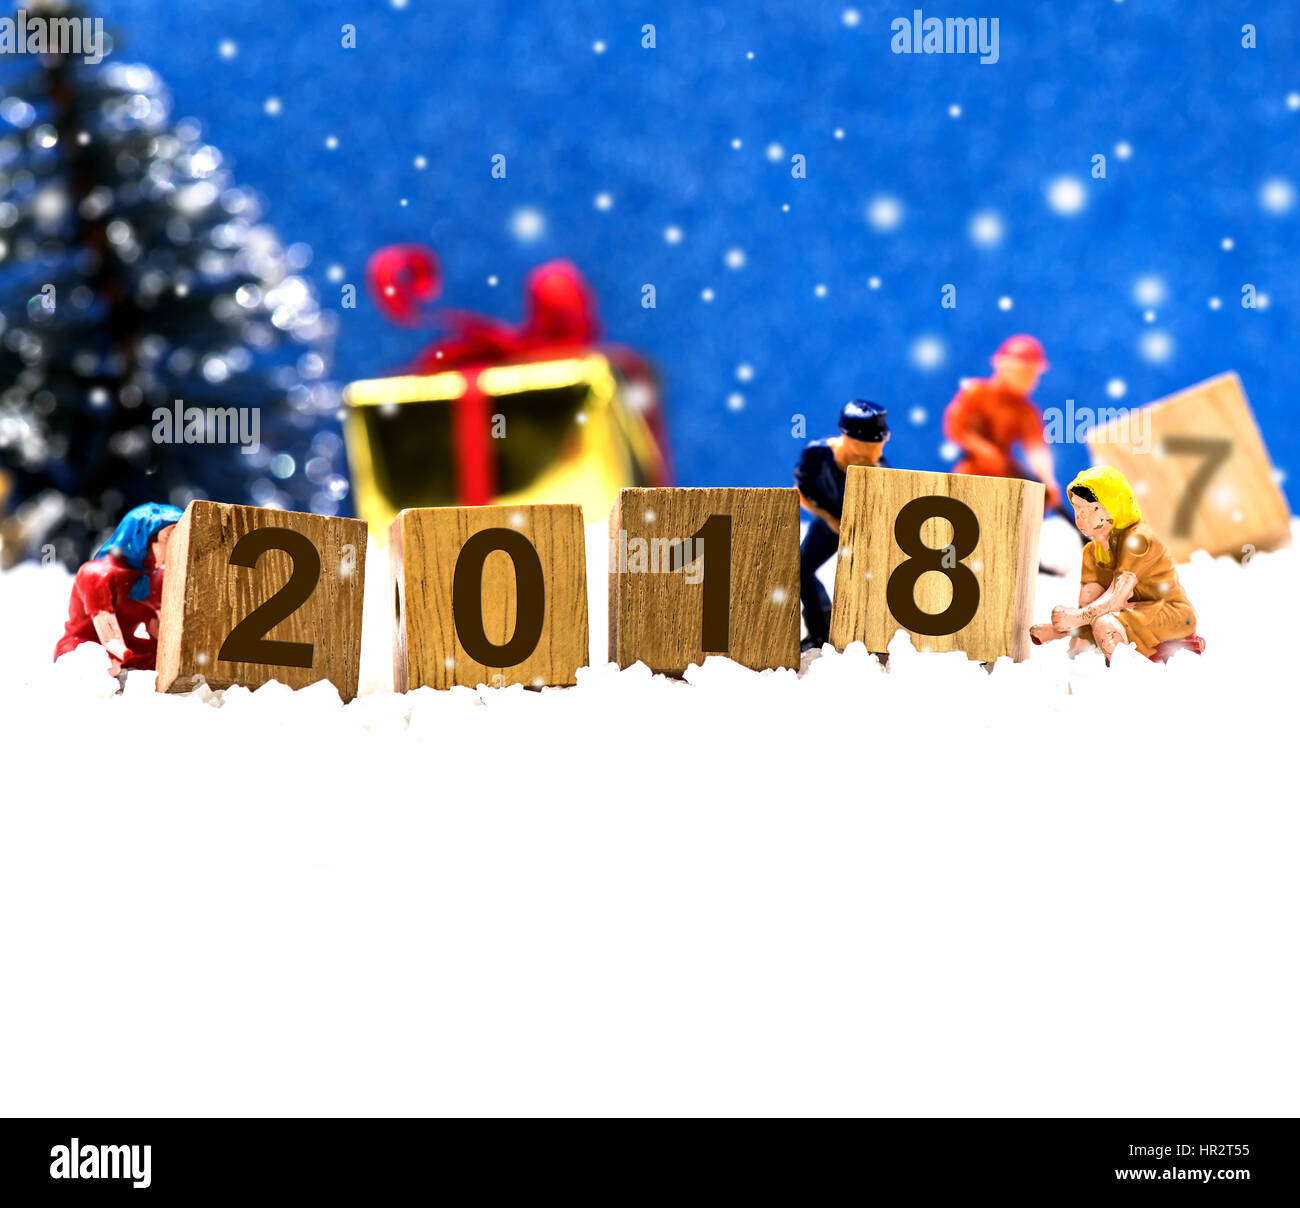 Merry Christmas And Happy New Year 2018, Winter Season